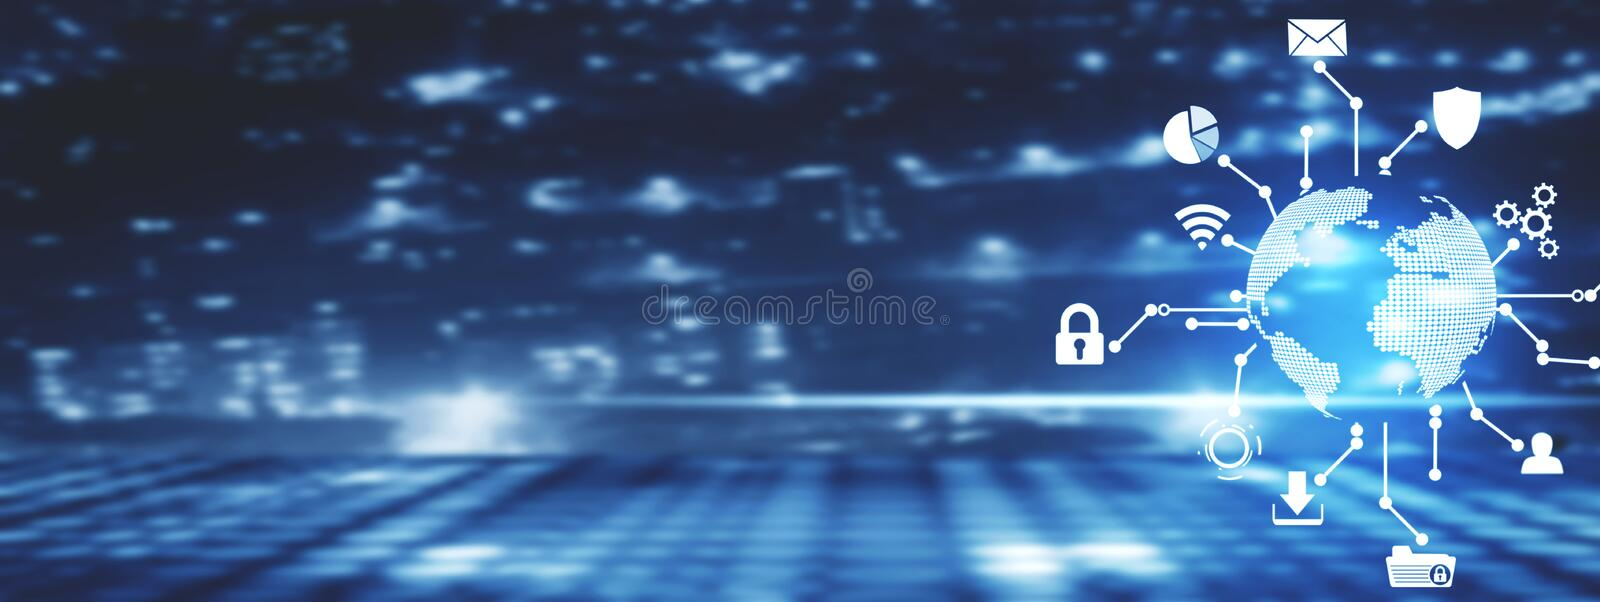 Global network connection. Modern world technology royalty free stock images